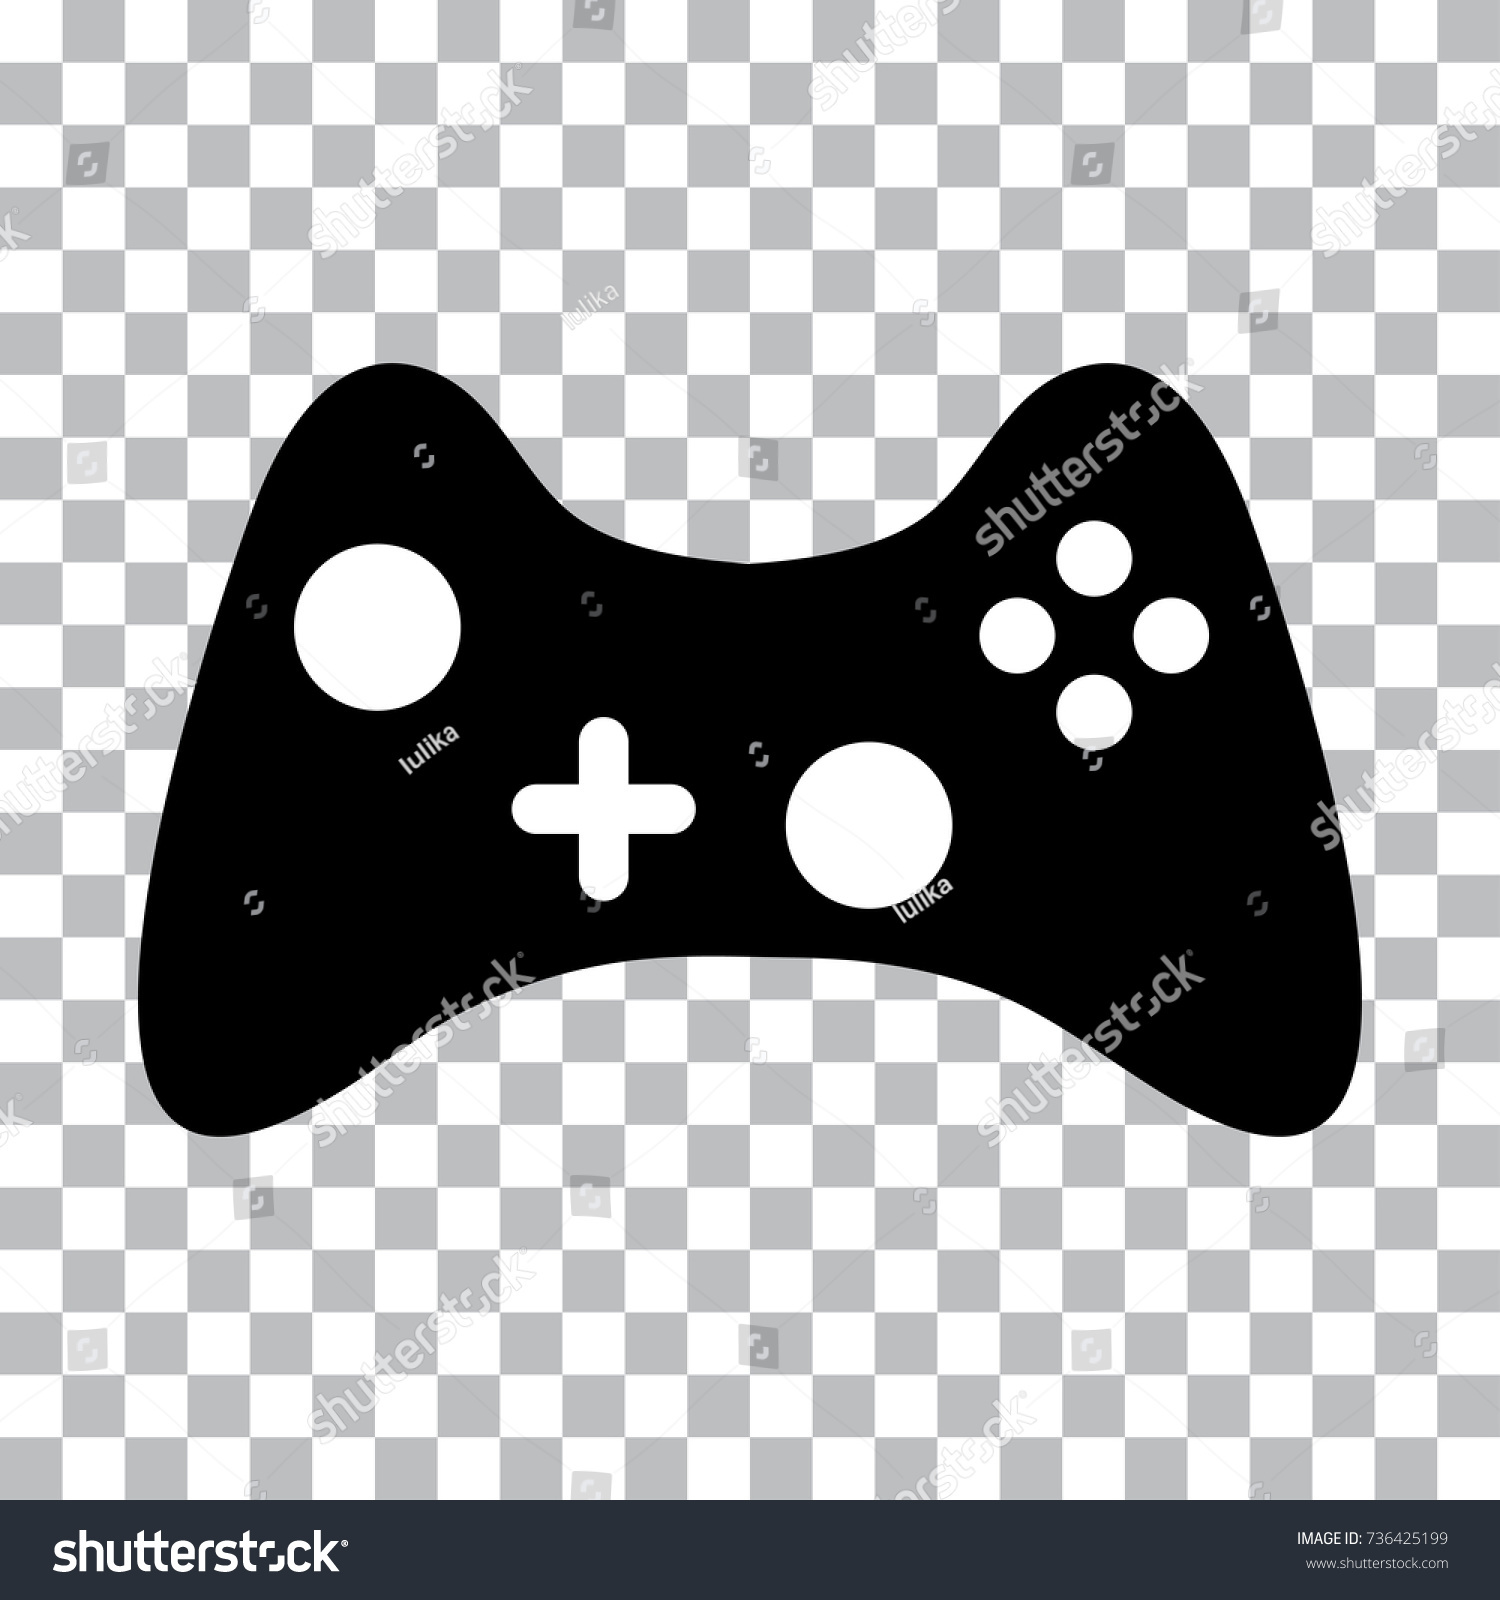 Black White Joystick Computer Games On Stock Vector Royalty Free 736425199